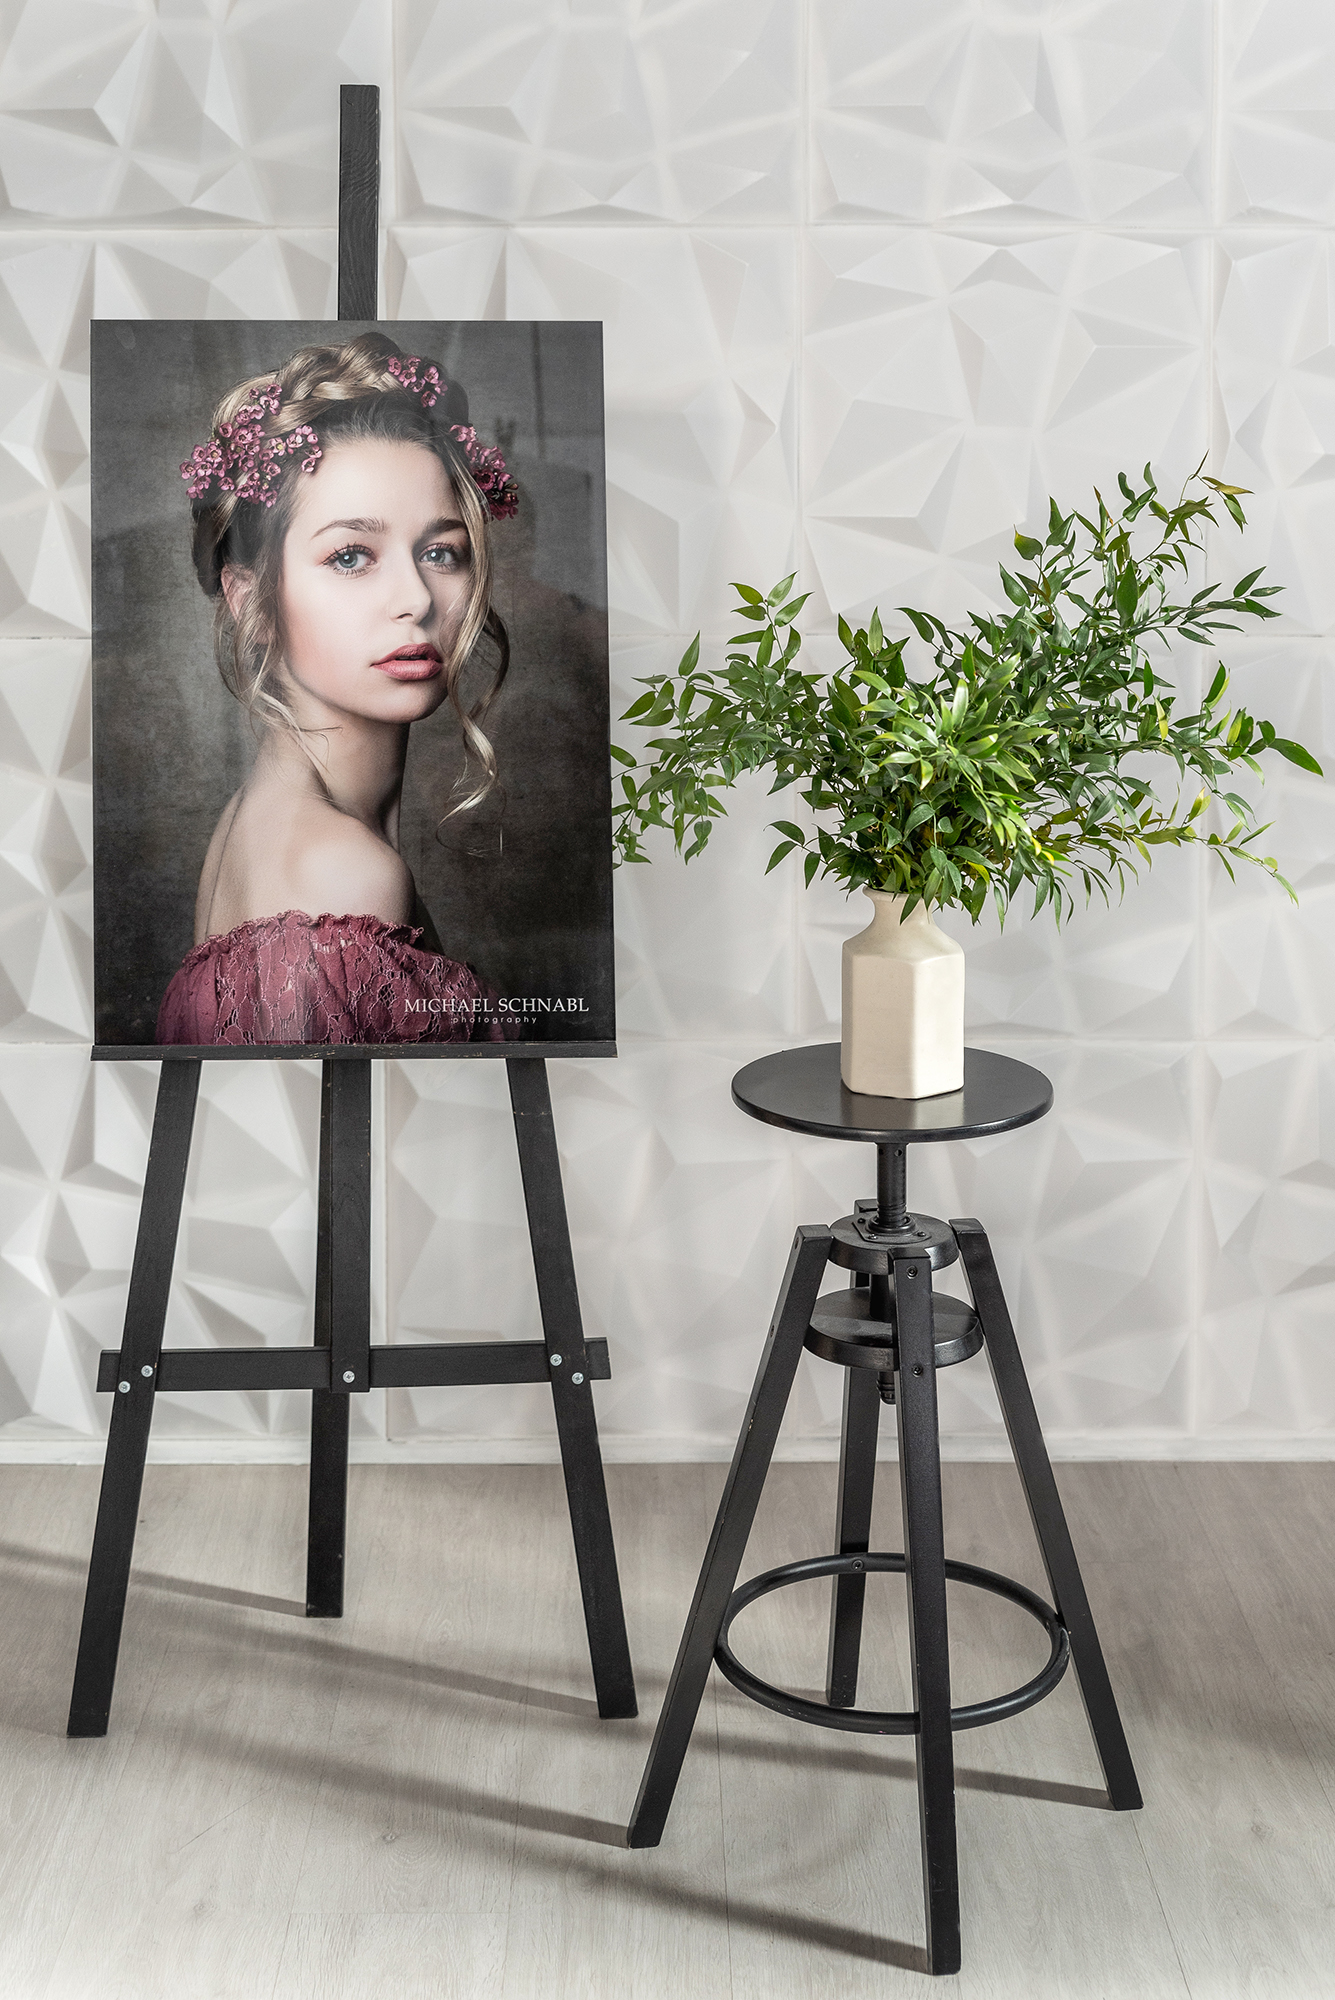 professional portrait in an acrylic print